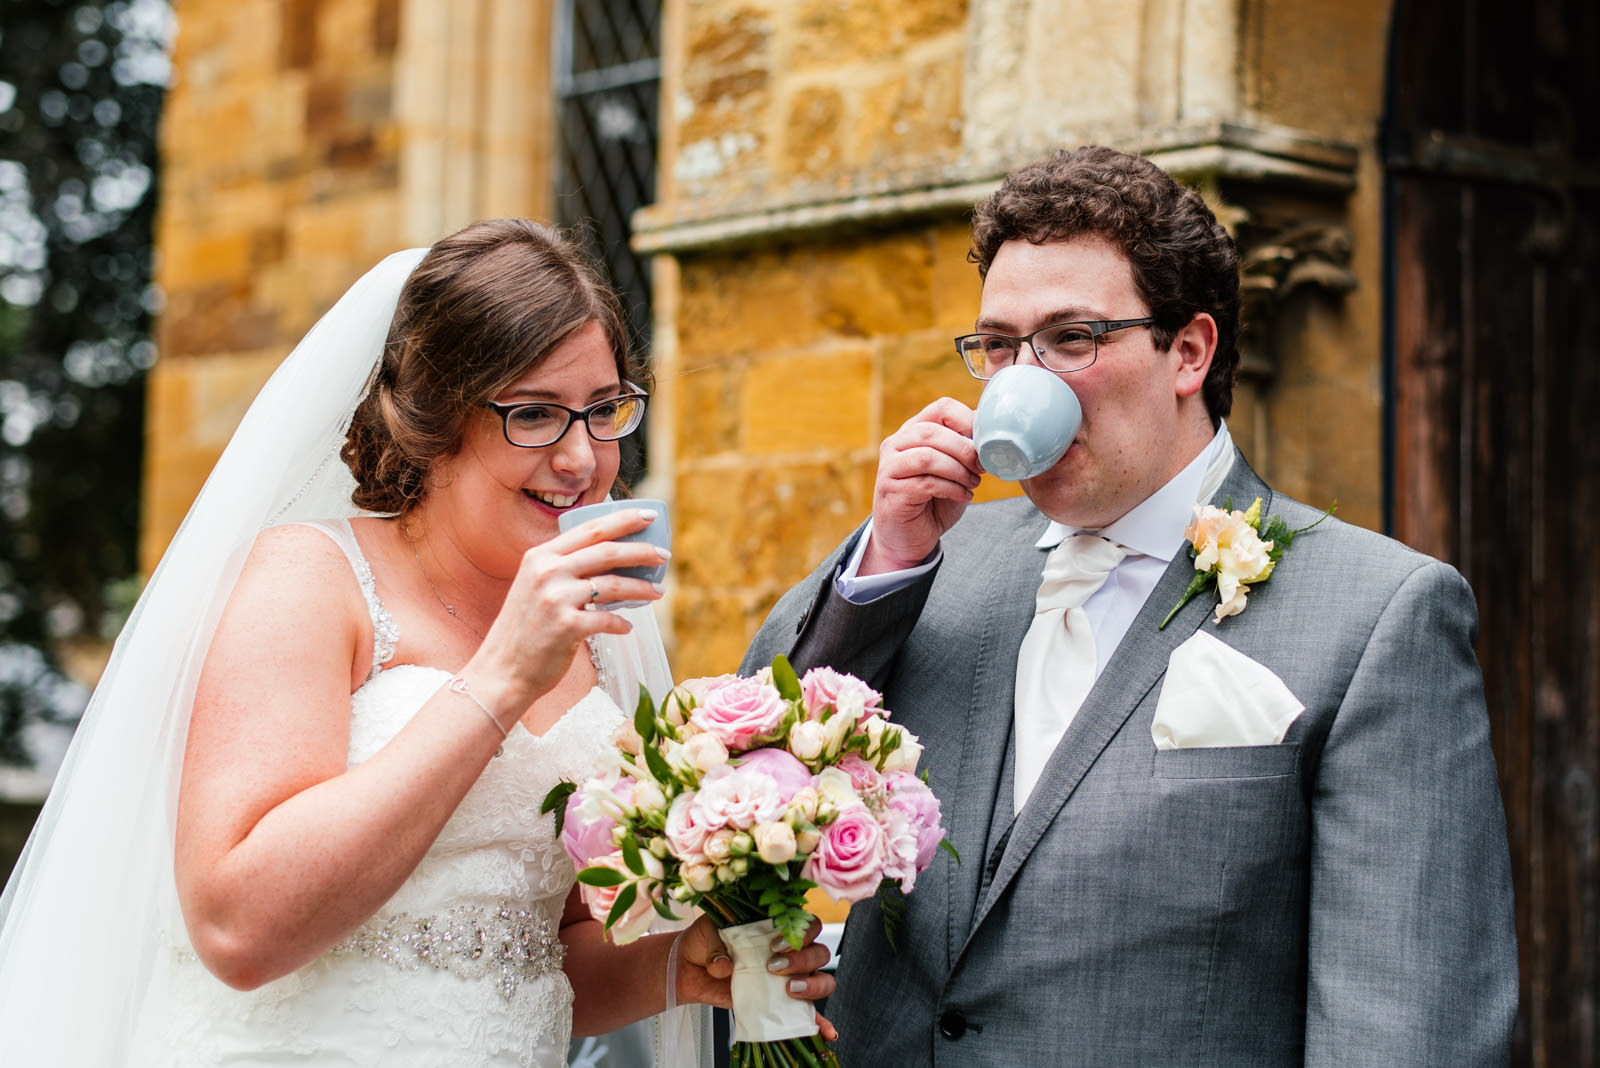 bride and groom enjoy a cup of tea at the church